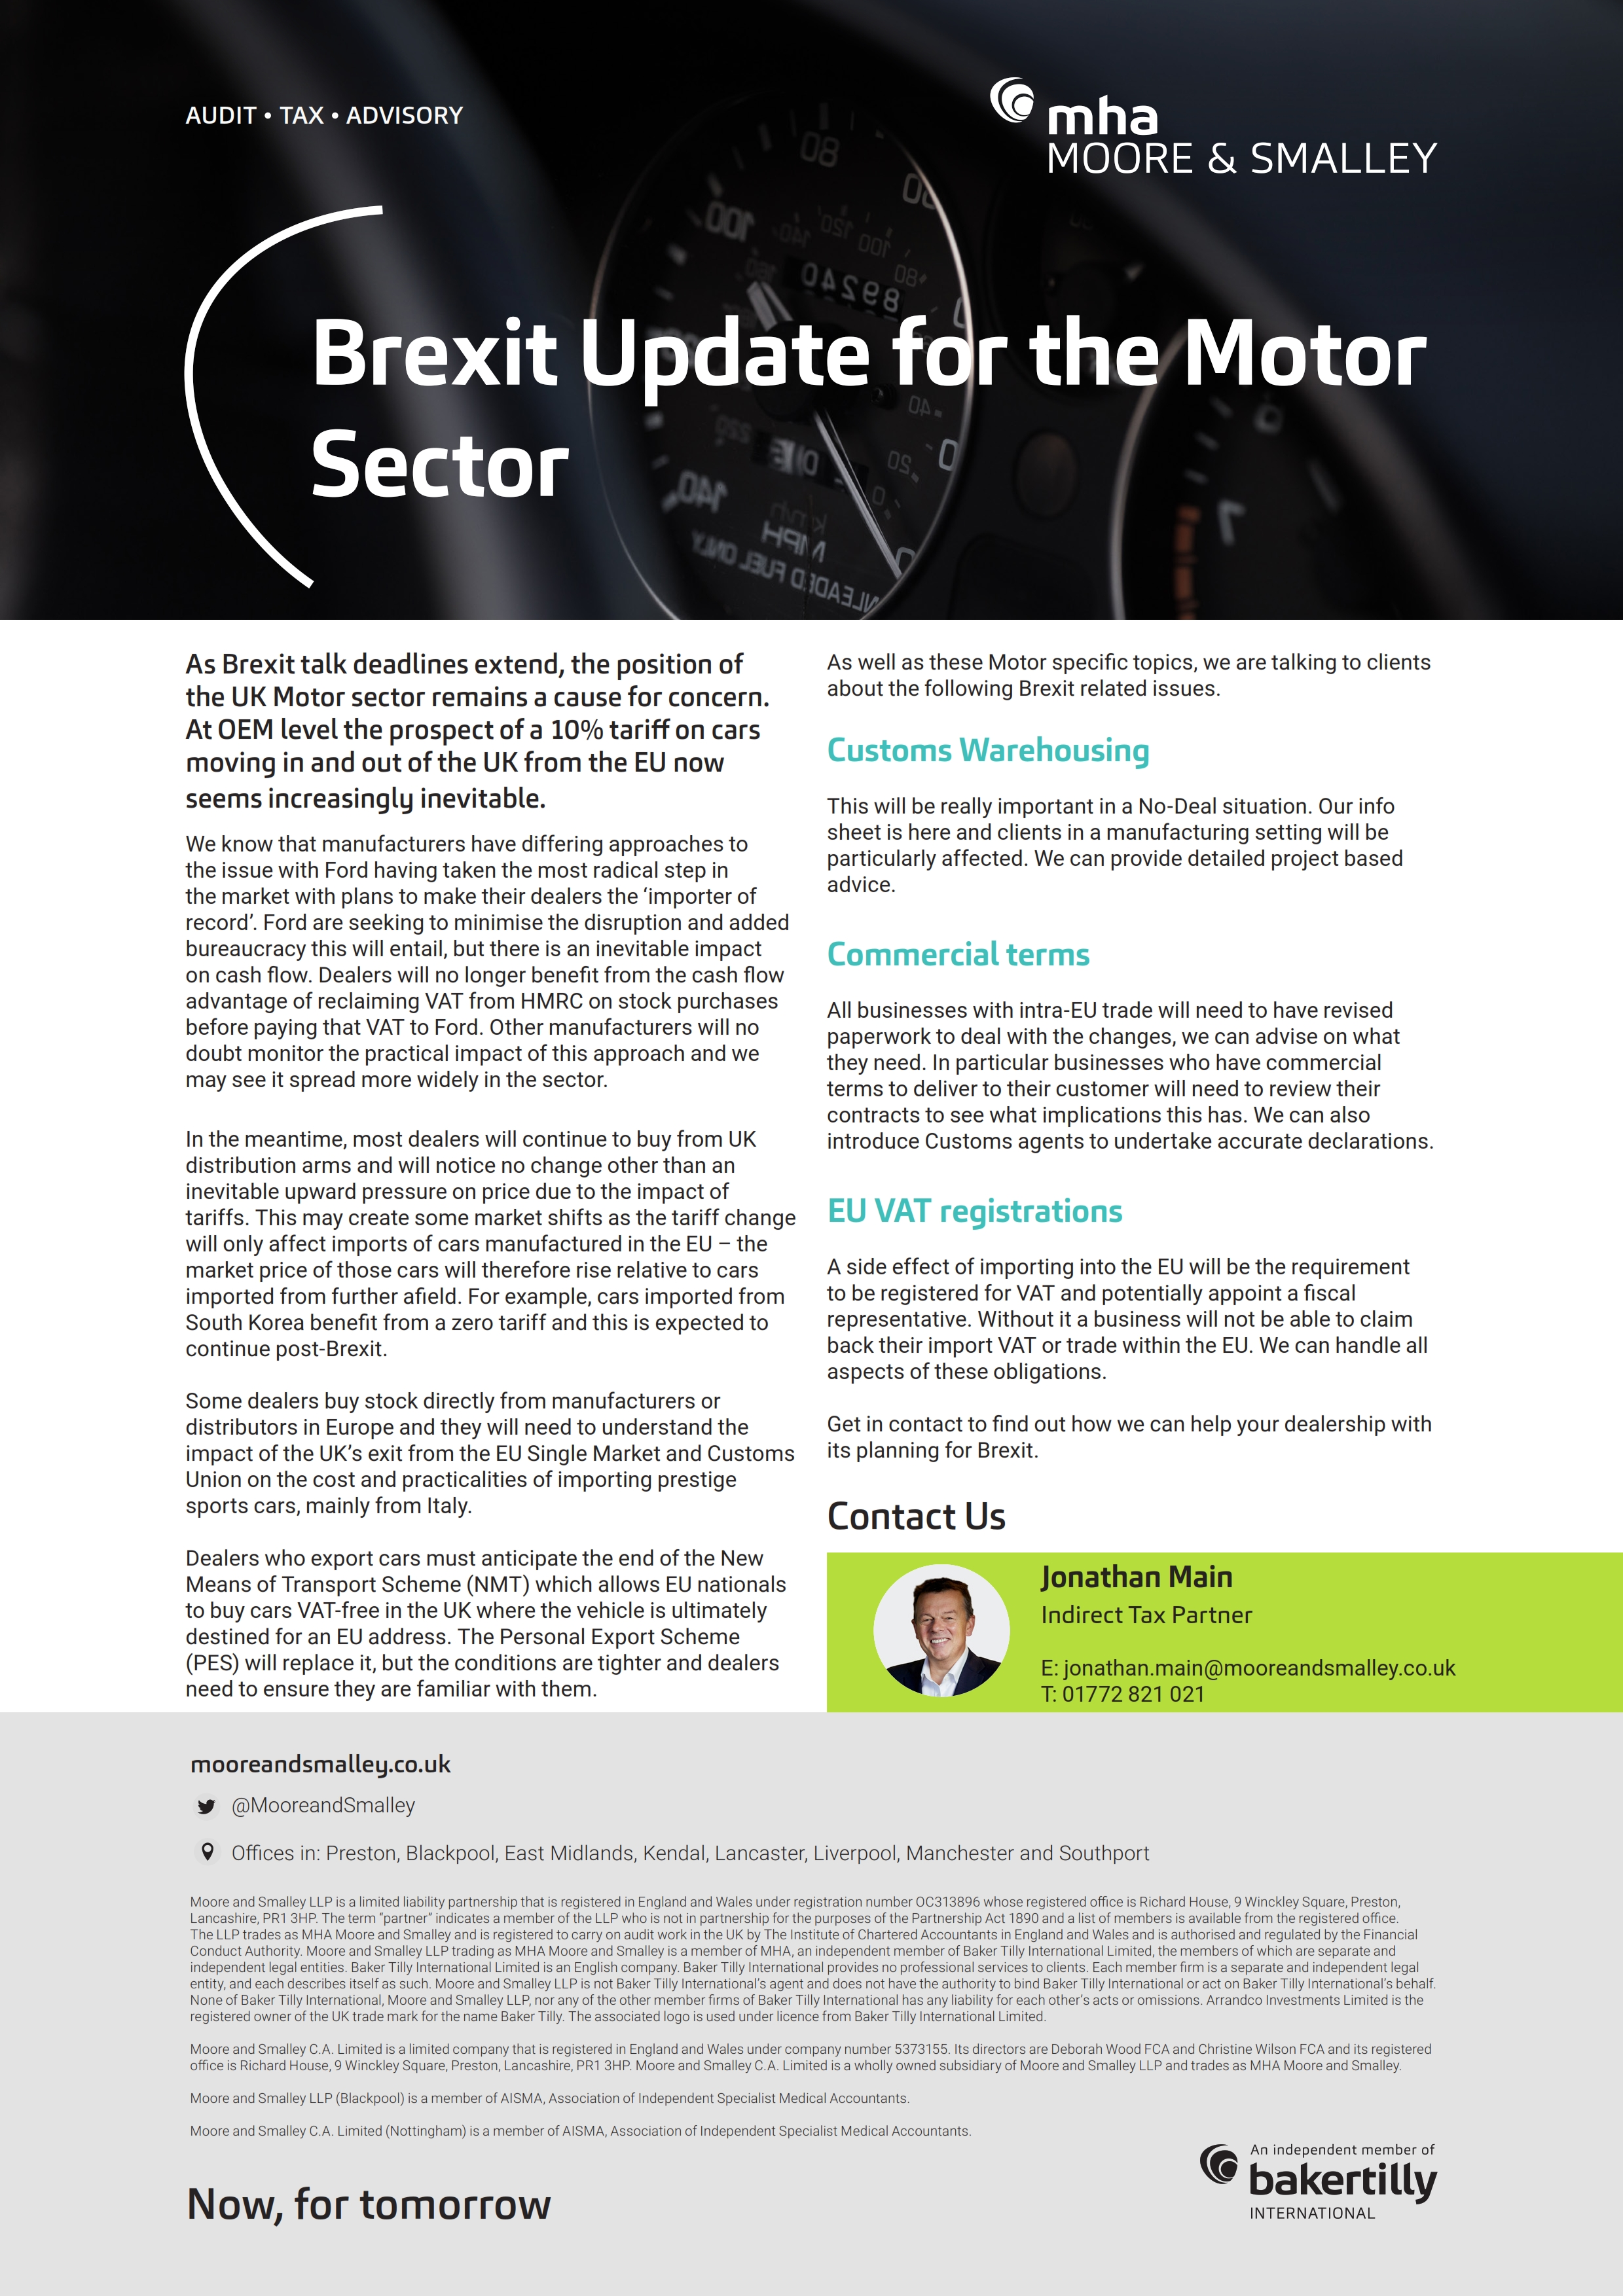 Brexit Update for the Motor Sector